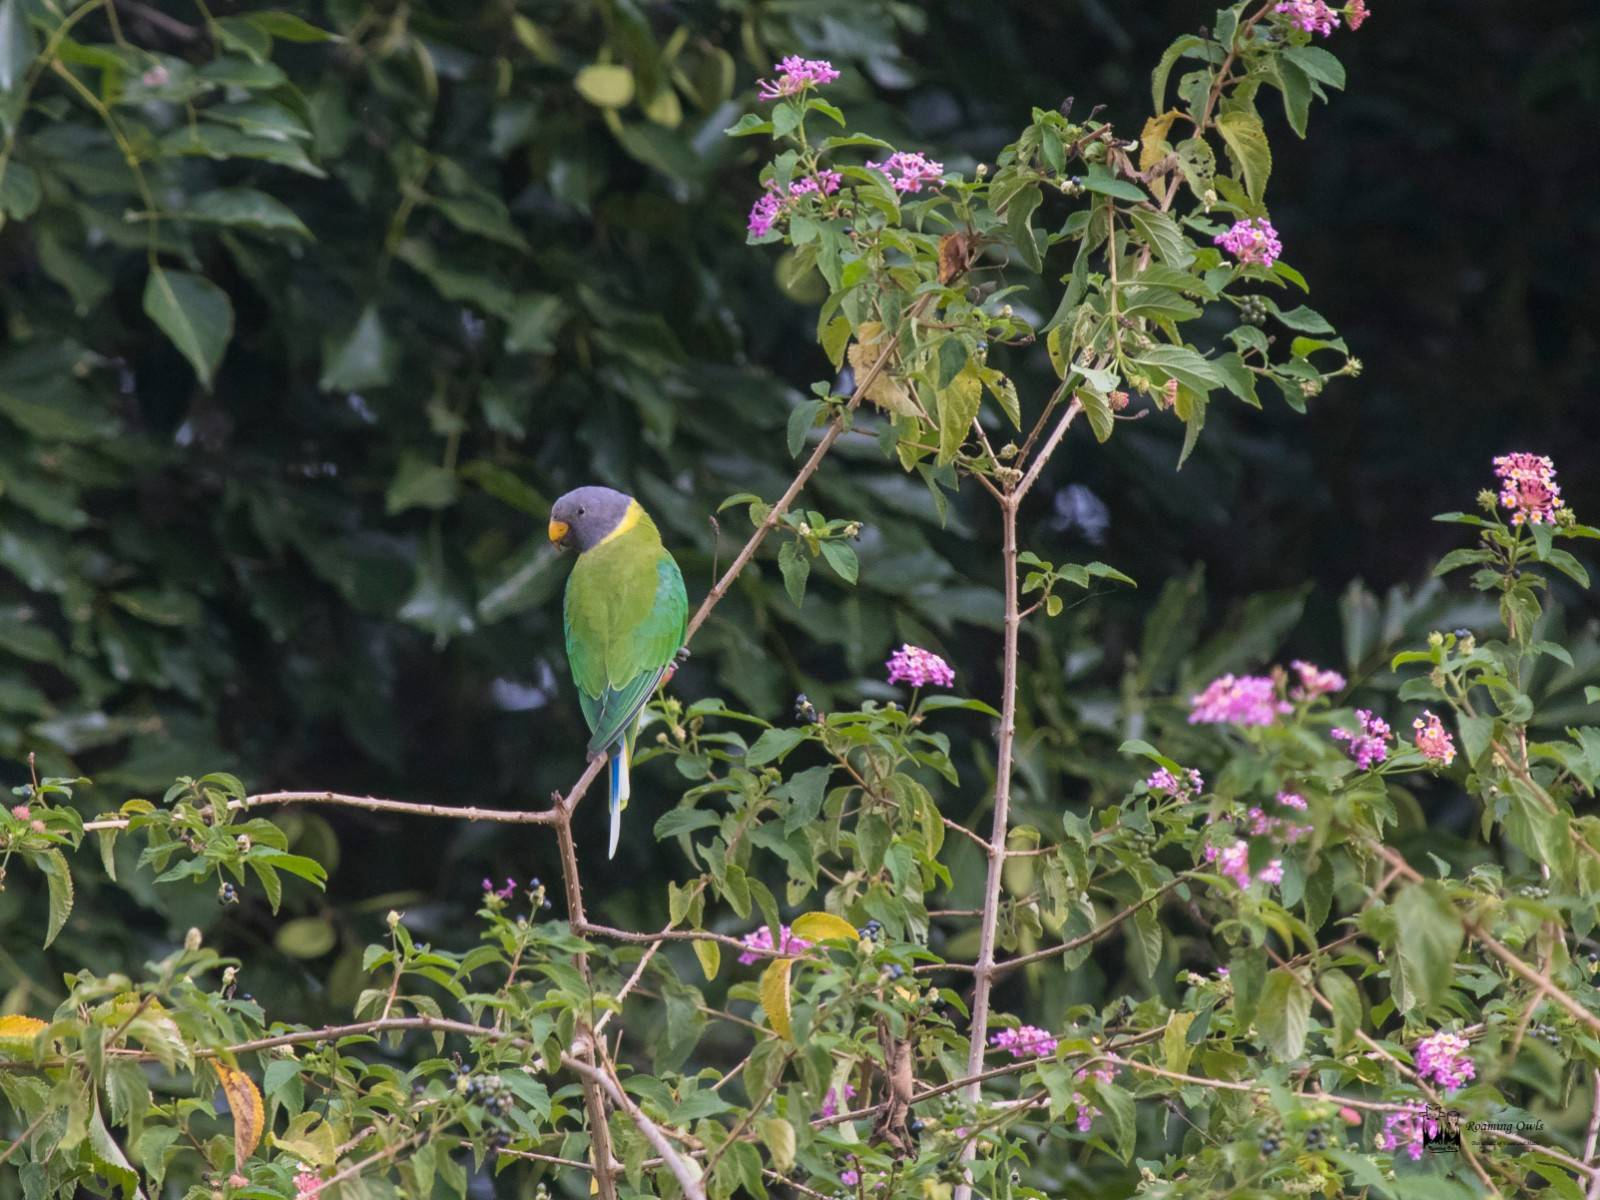 yelagiri, Plum headed parakeet female